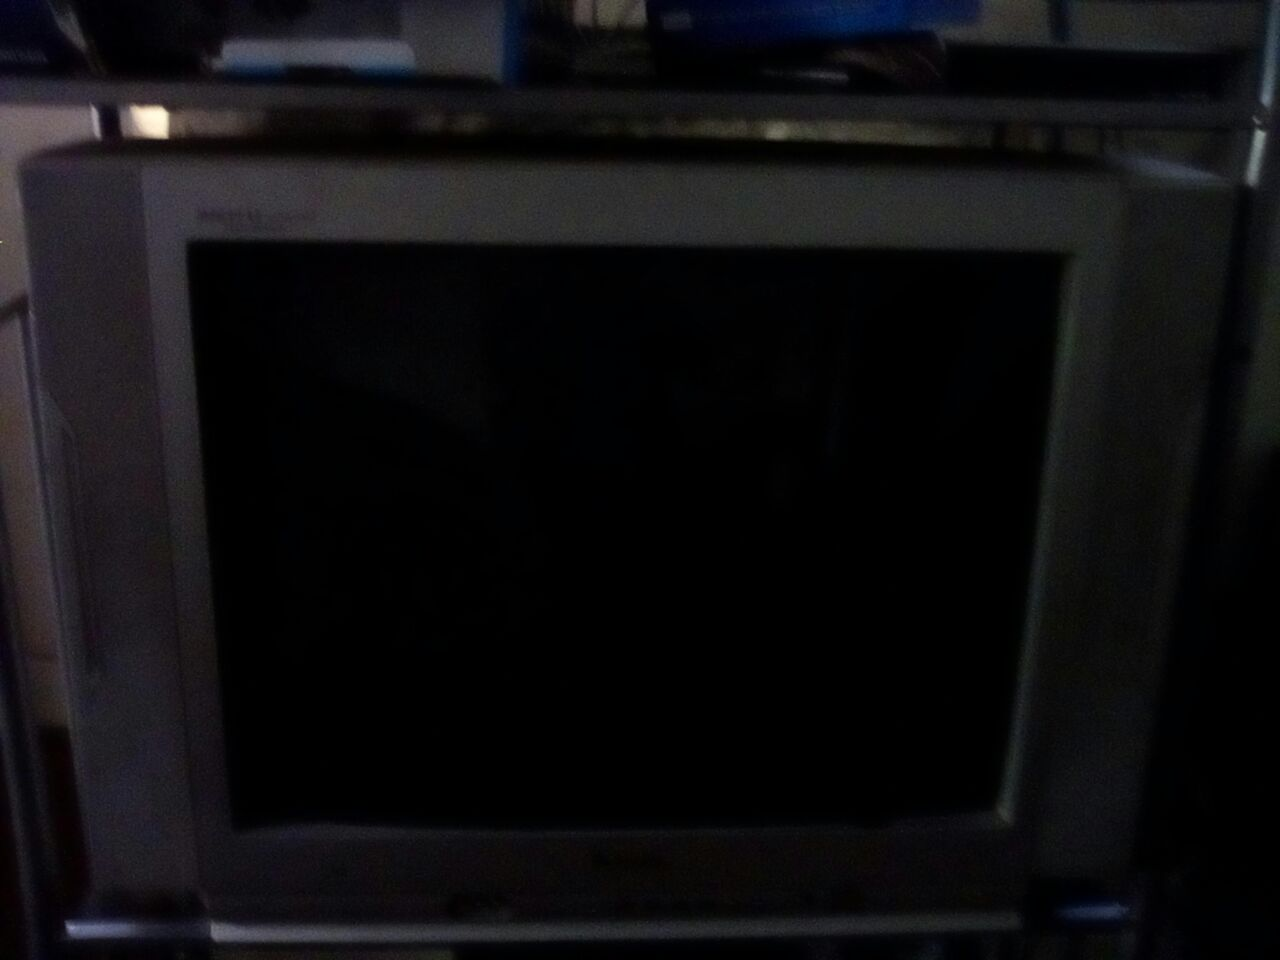 sanui tv 37cm and 54 cm